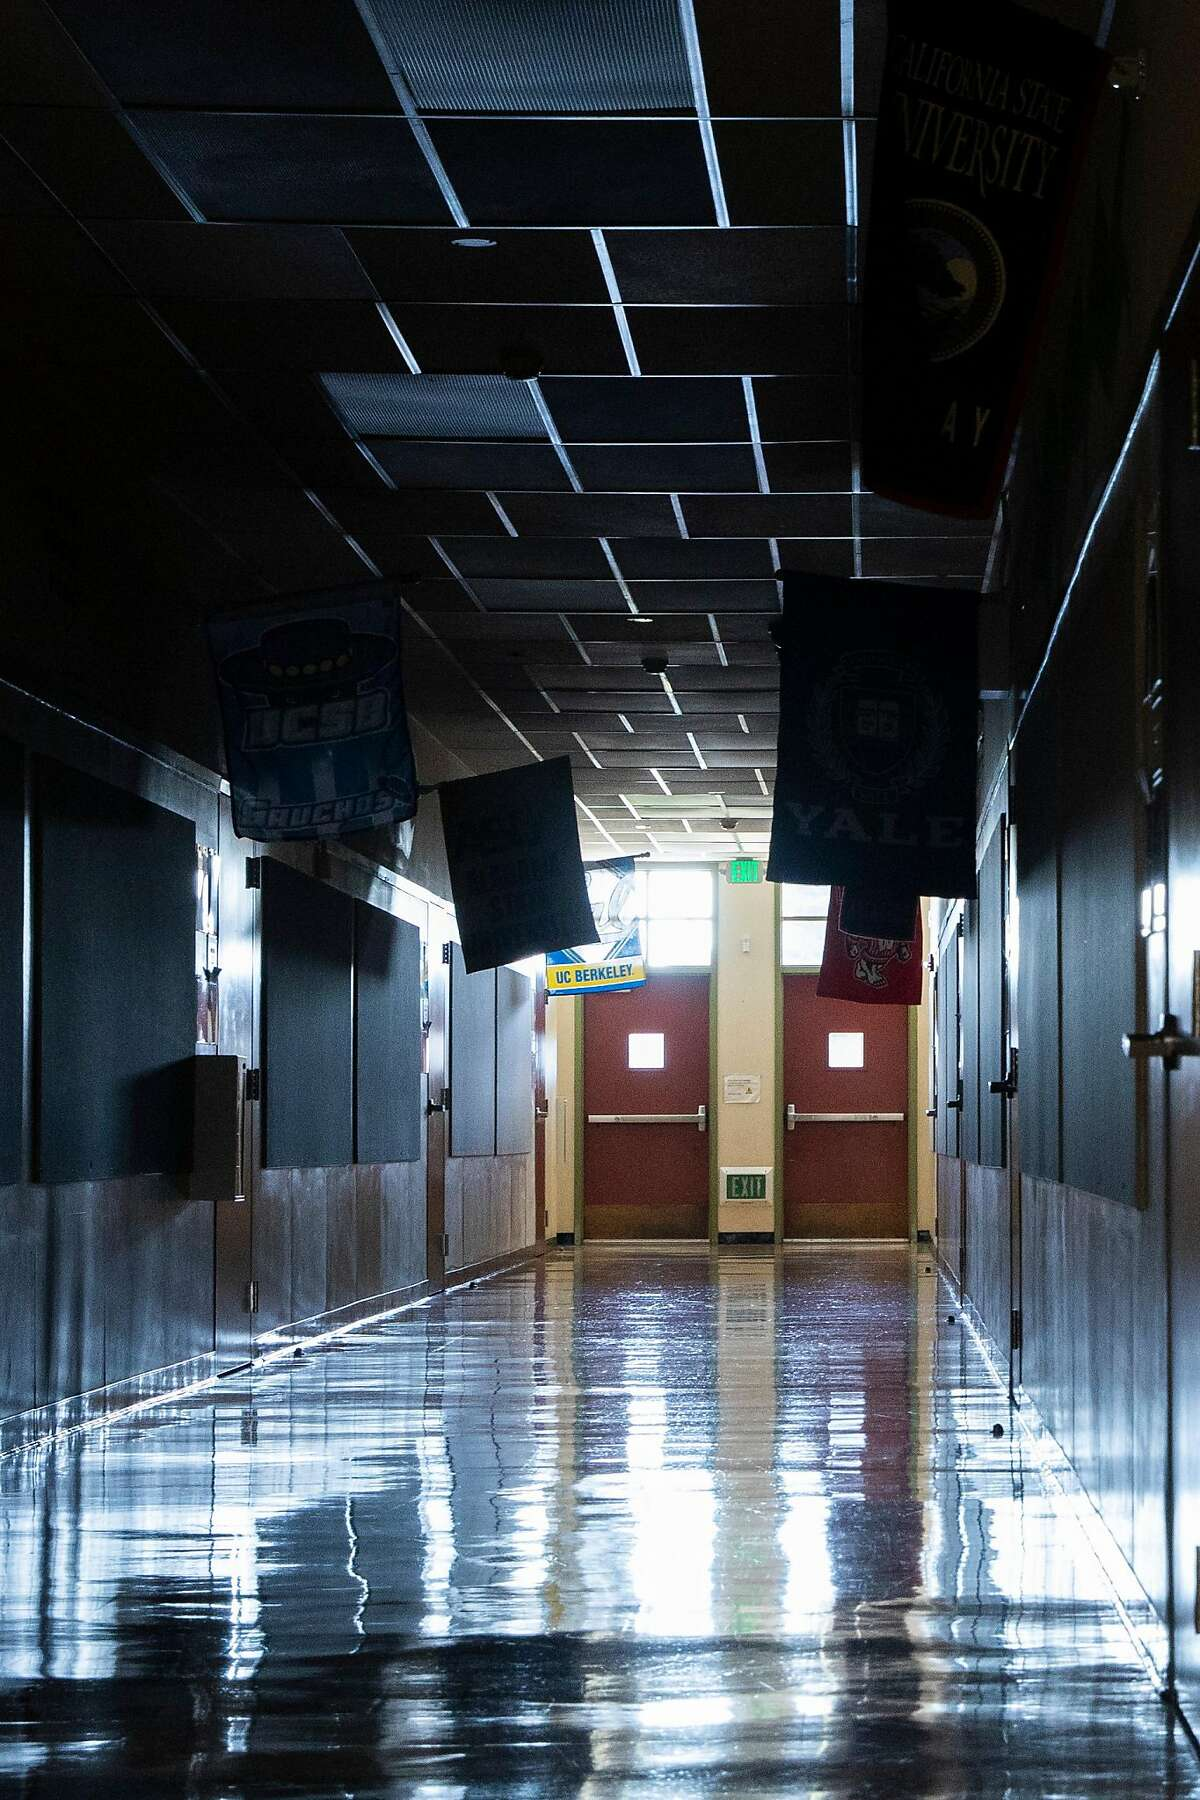 The dark halls of Garfield Elementary School in Oakland, Calif. Tuesday, March 23, 2021. Garfield Elementary School will partially re-open for students in grades kindergarten through second grade beginning Tuesday, March 30.